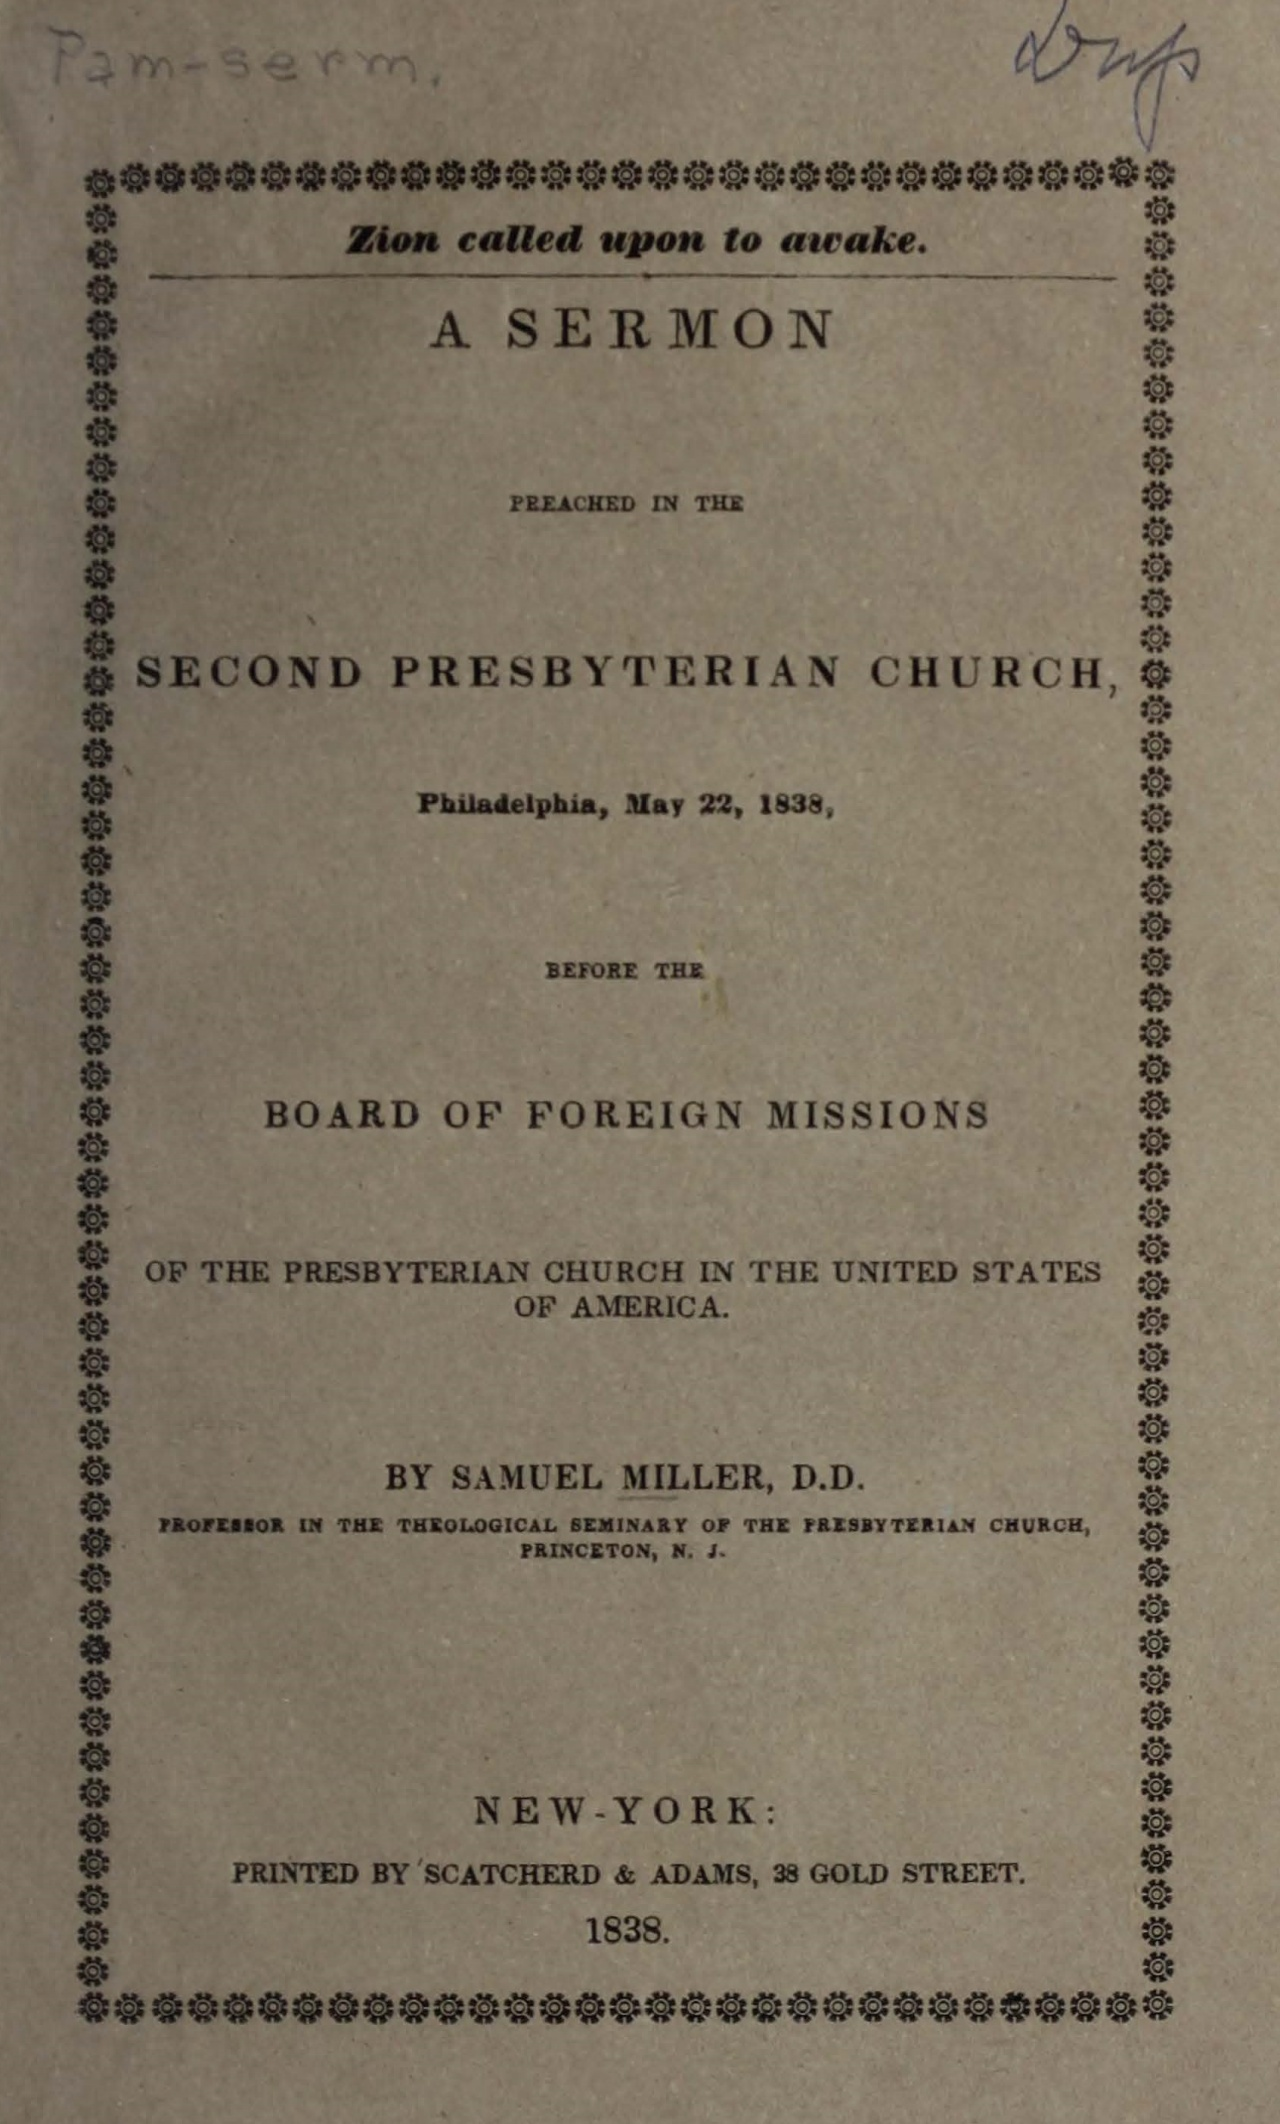 Miller, Samuel, Zion Called Upon to Awake Title Page.jpg